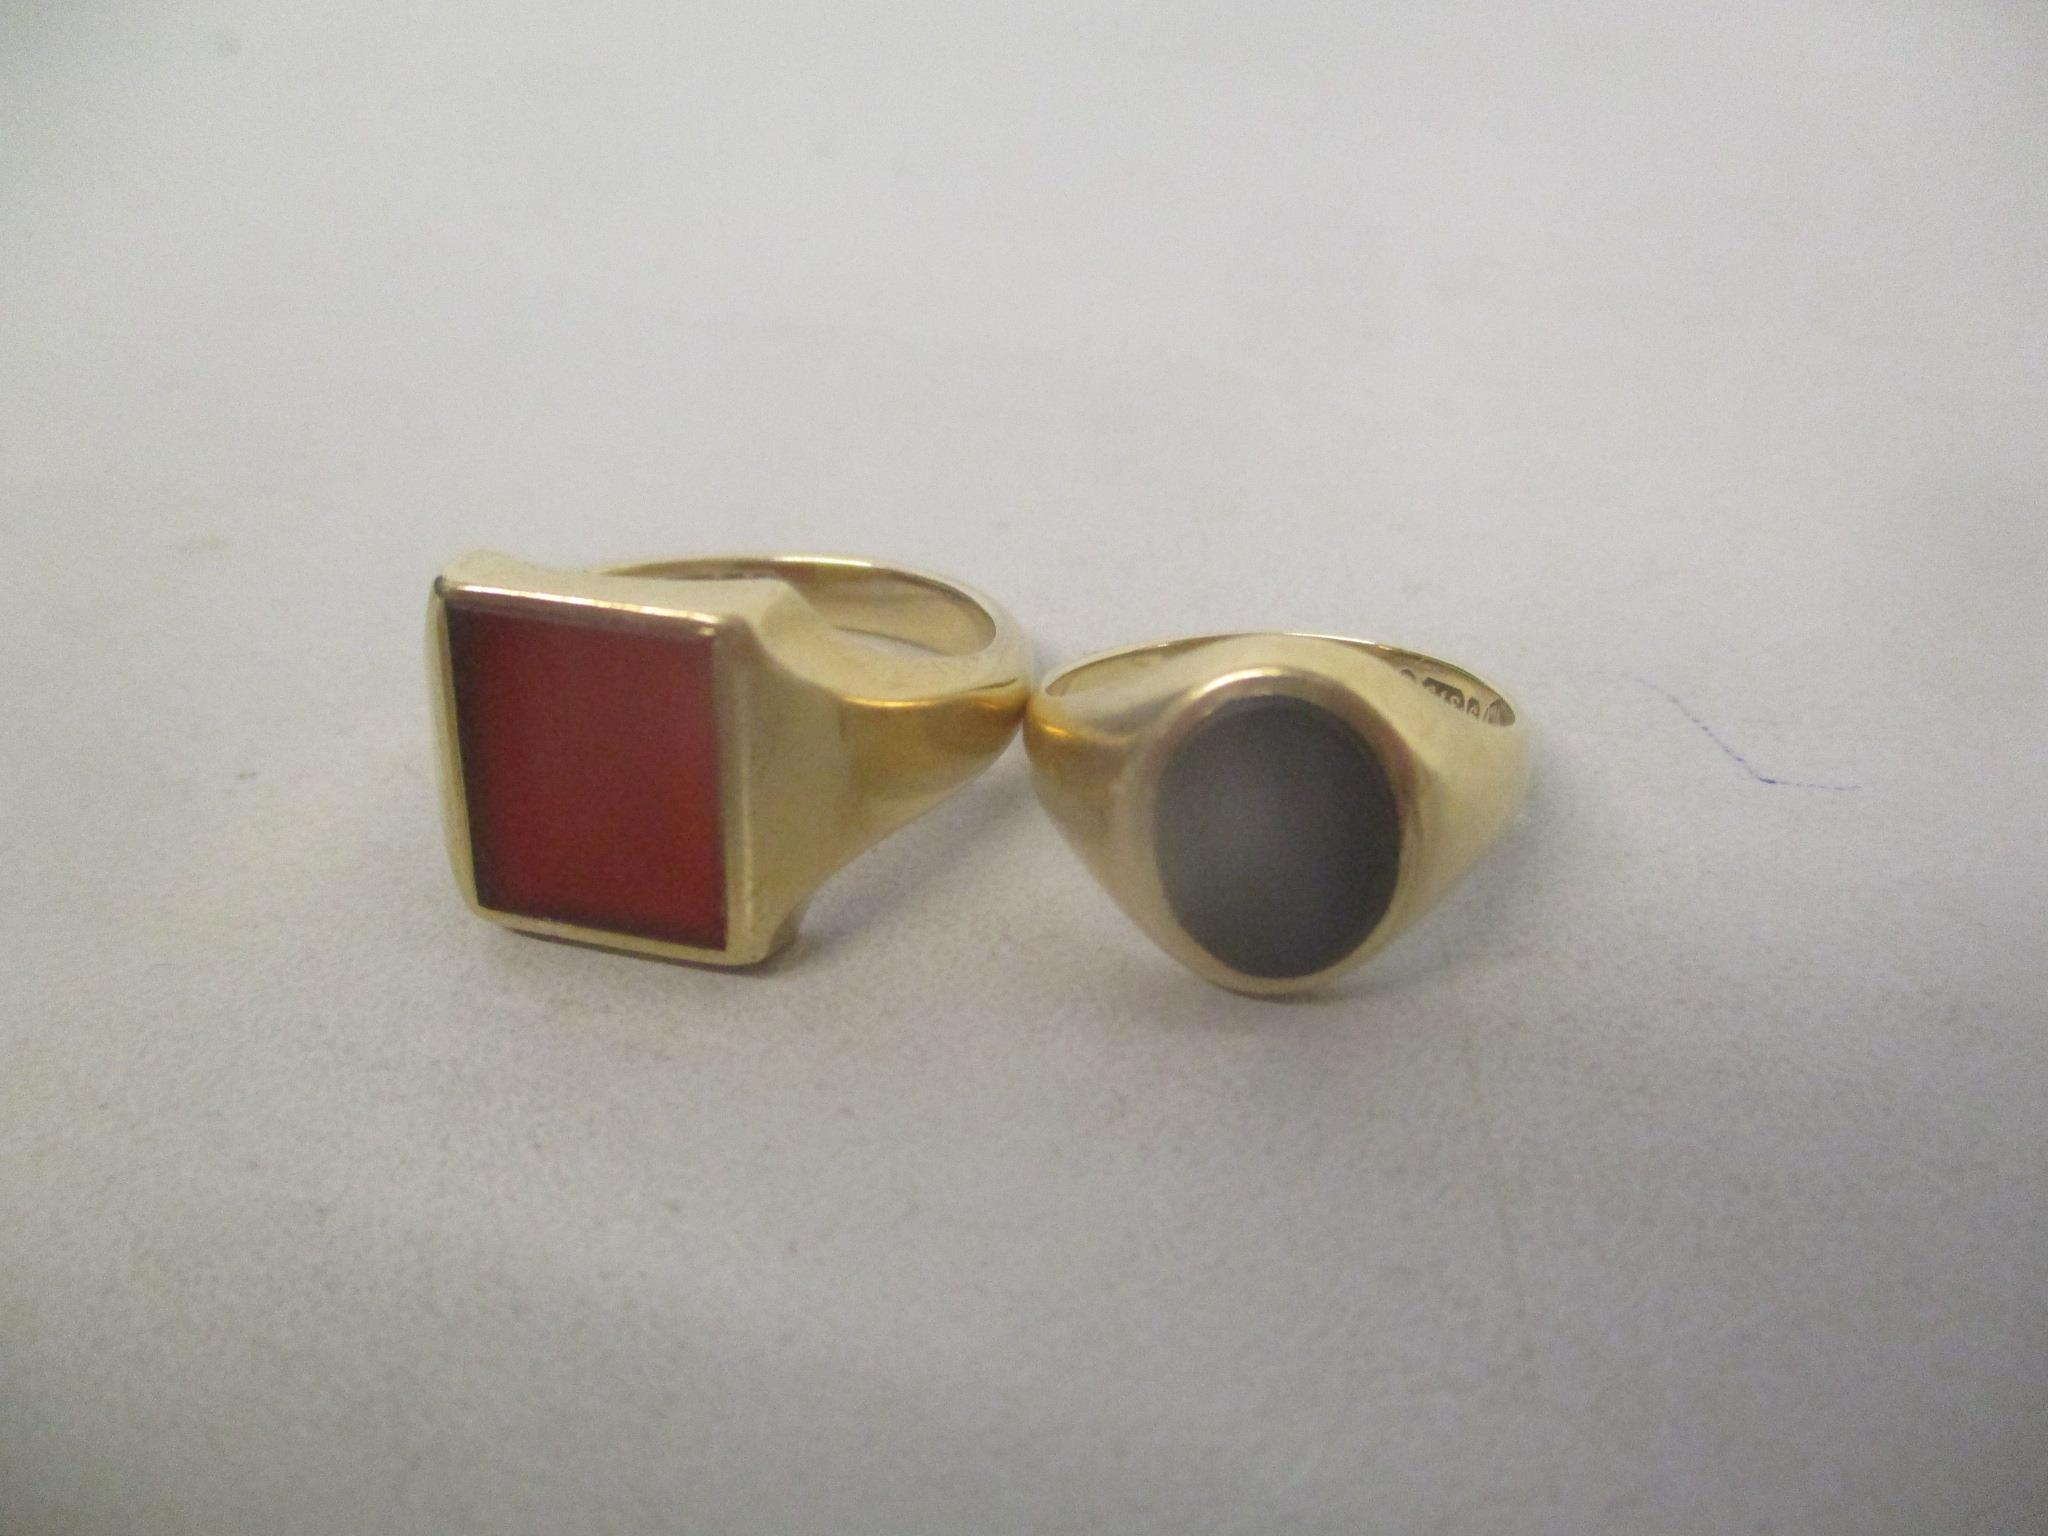 Two 9ct gold signet rings, 9.6g